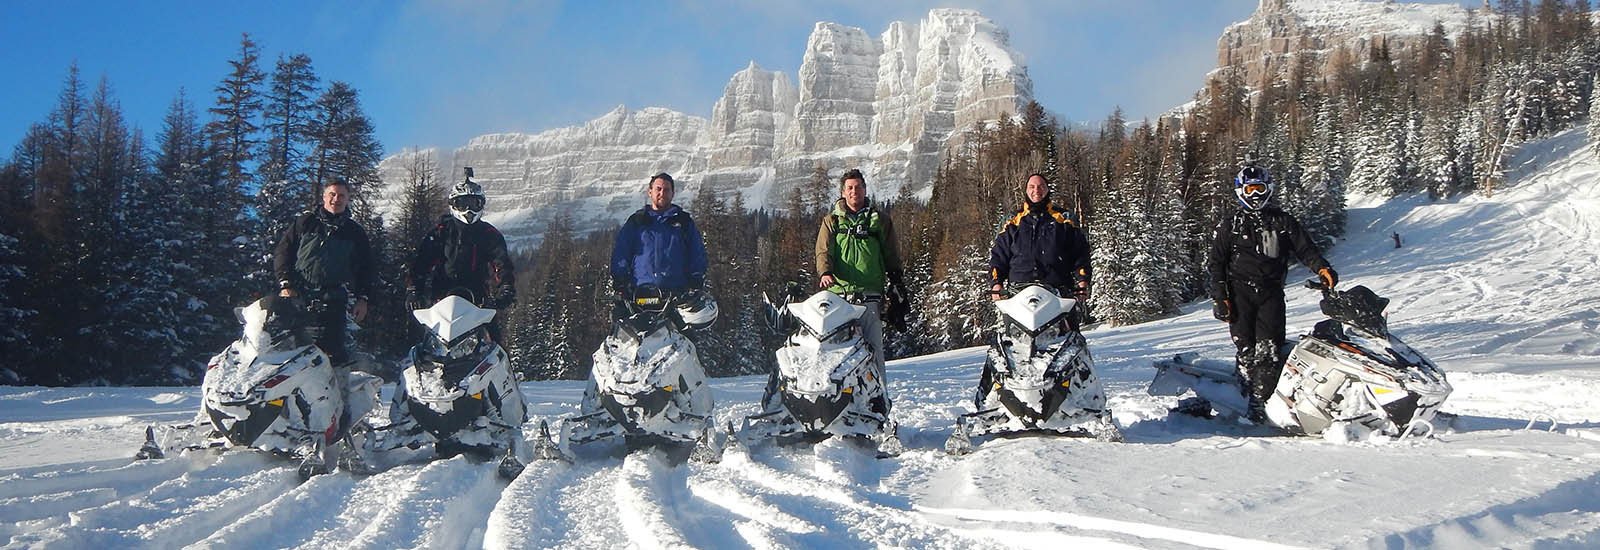 Snowmobilers in a snowy mountain landscape at Brooks Lake Lodge, an all inclusive resort in Dubois, WY